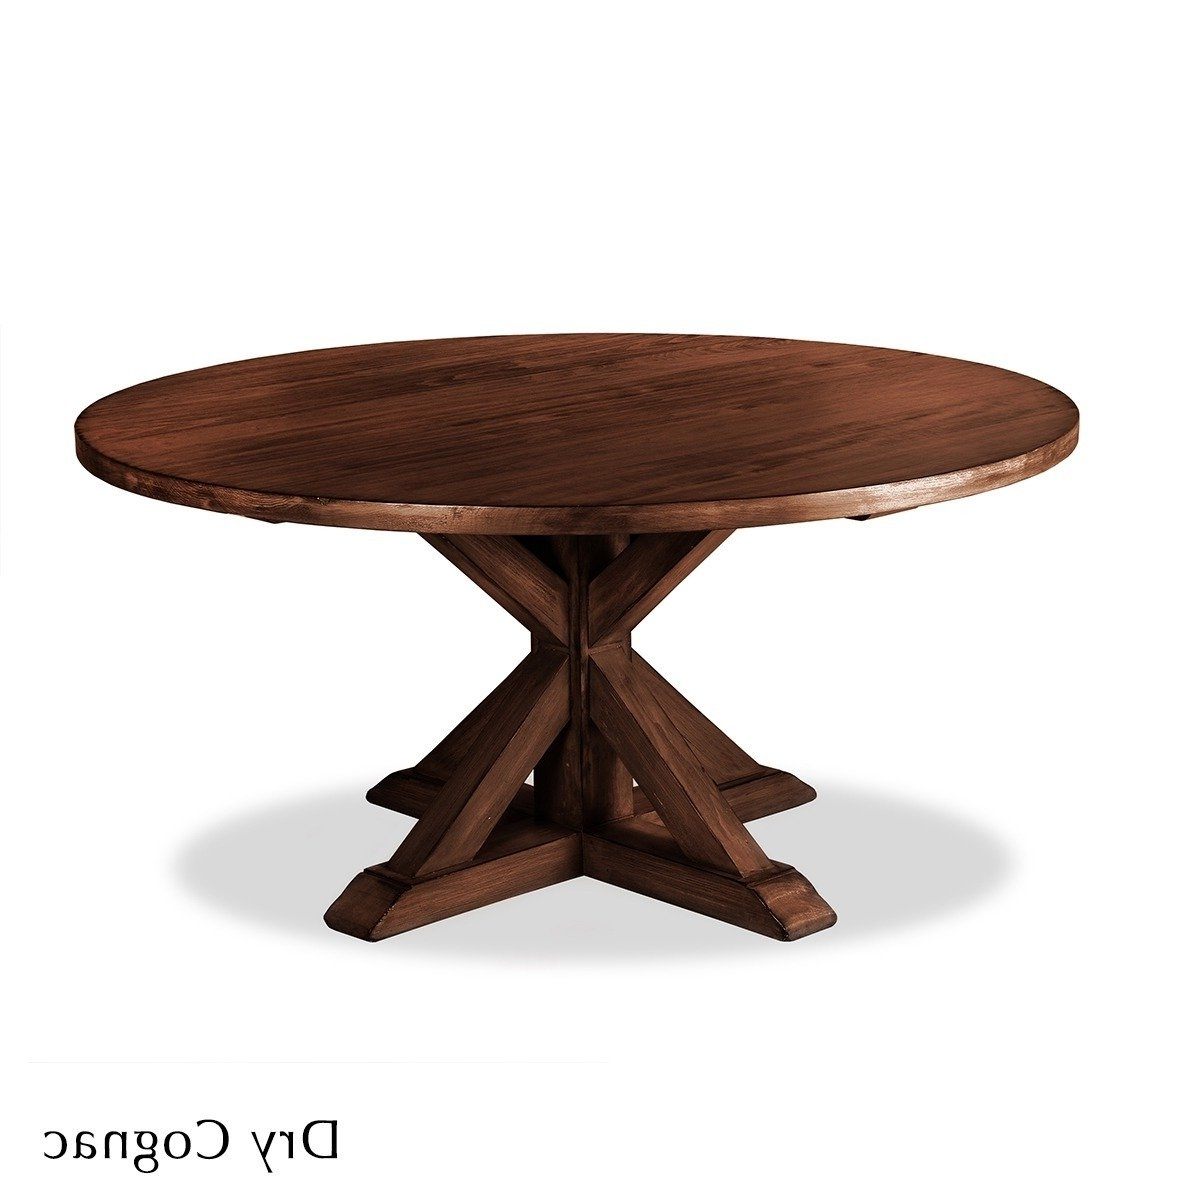 Shop La Phillippe Reclaimed Wood Round Dining Table – Free Shipping Throughout Well Known Oval Reclaimed Wood Dining Tables (View 18 of 25)